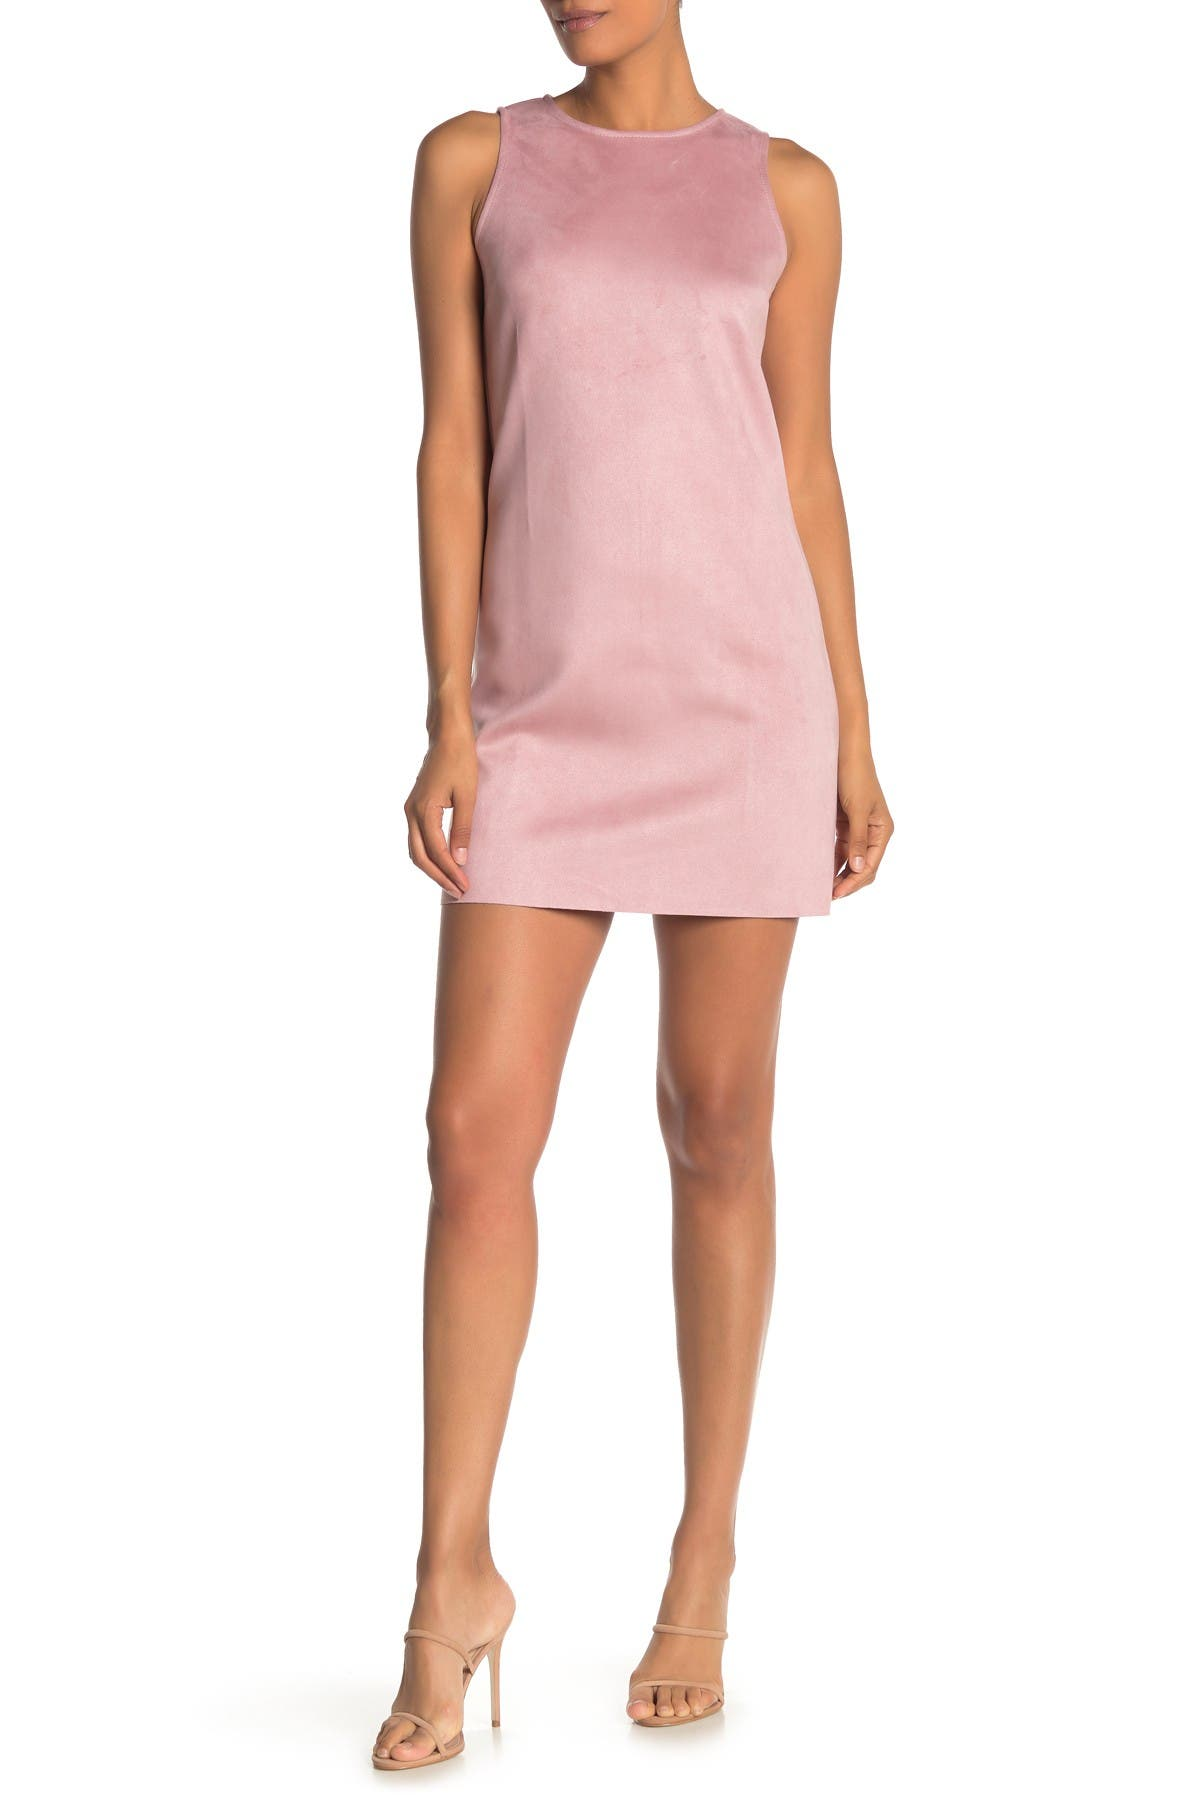 Image of Love...Ady Faux Suede A-Line Shift Dress